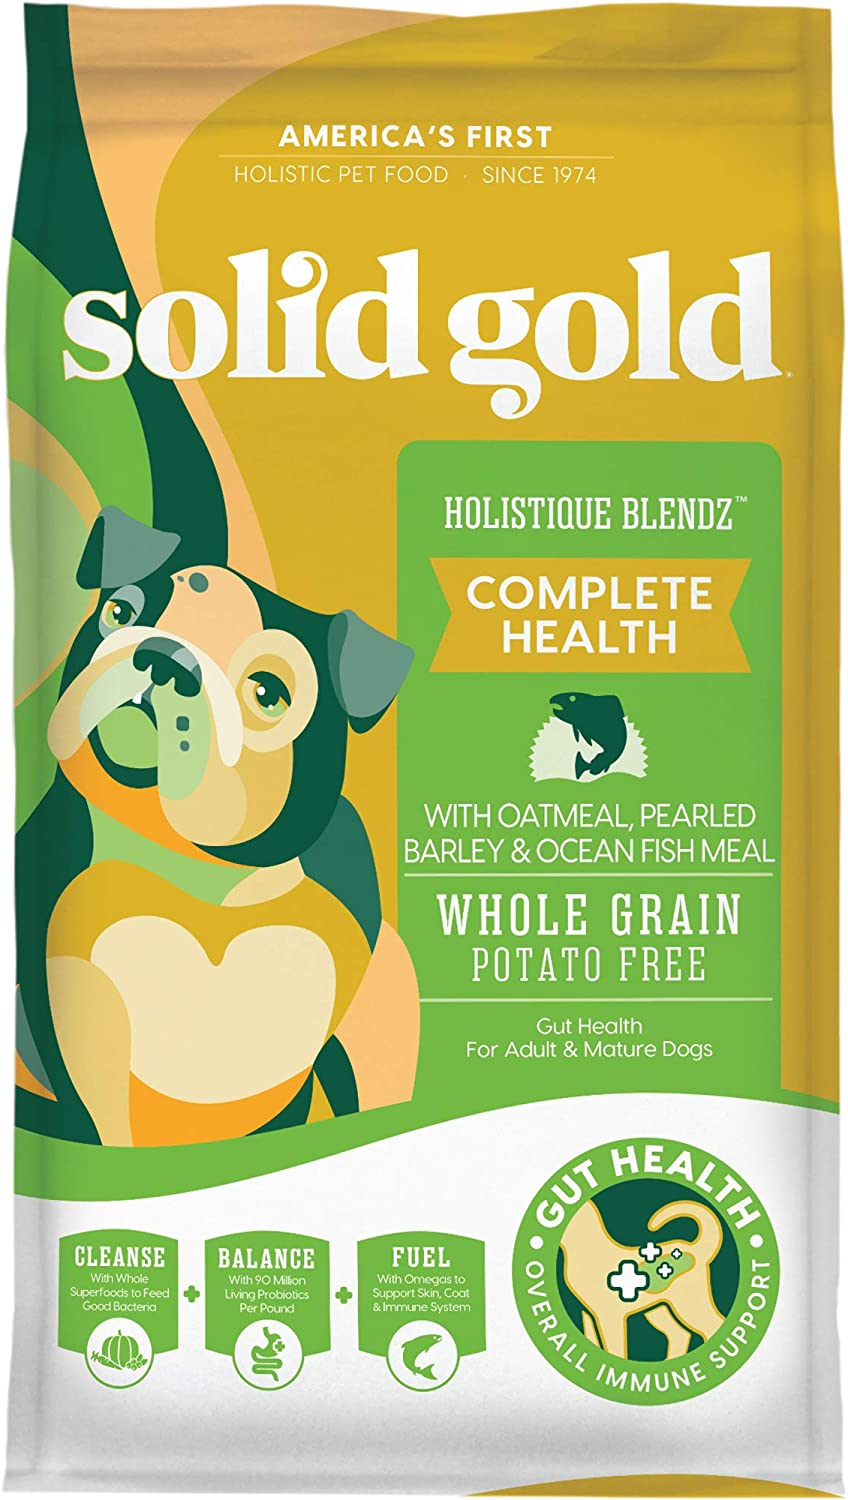 Solid Gold - Holistique Blendz - Natural Senior Dog Food for Sensitive Stomachs - Oatmeal, Pearled Barley and Fish Meal - Potato Free - Dry Dog Food